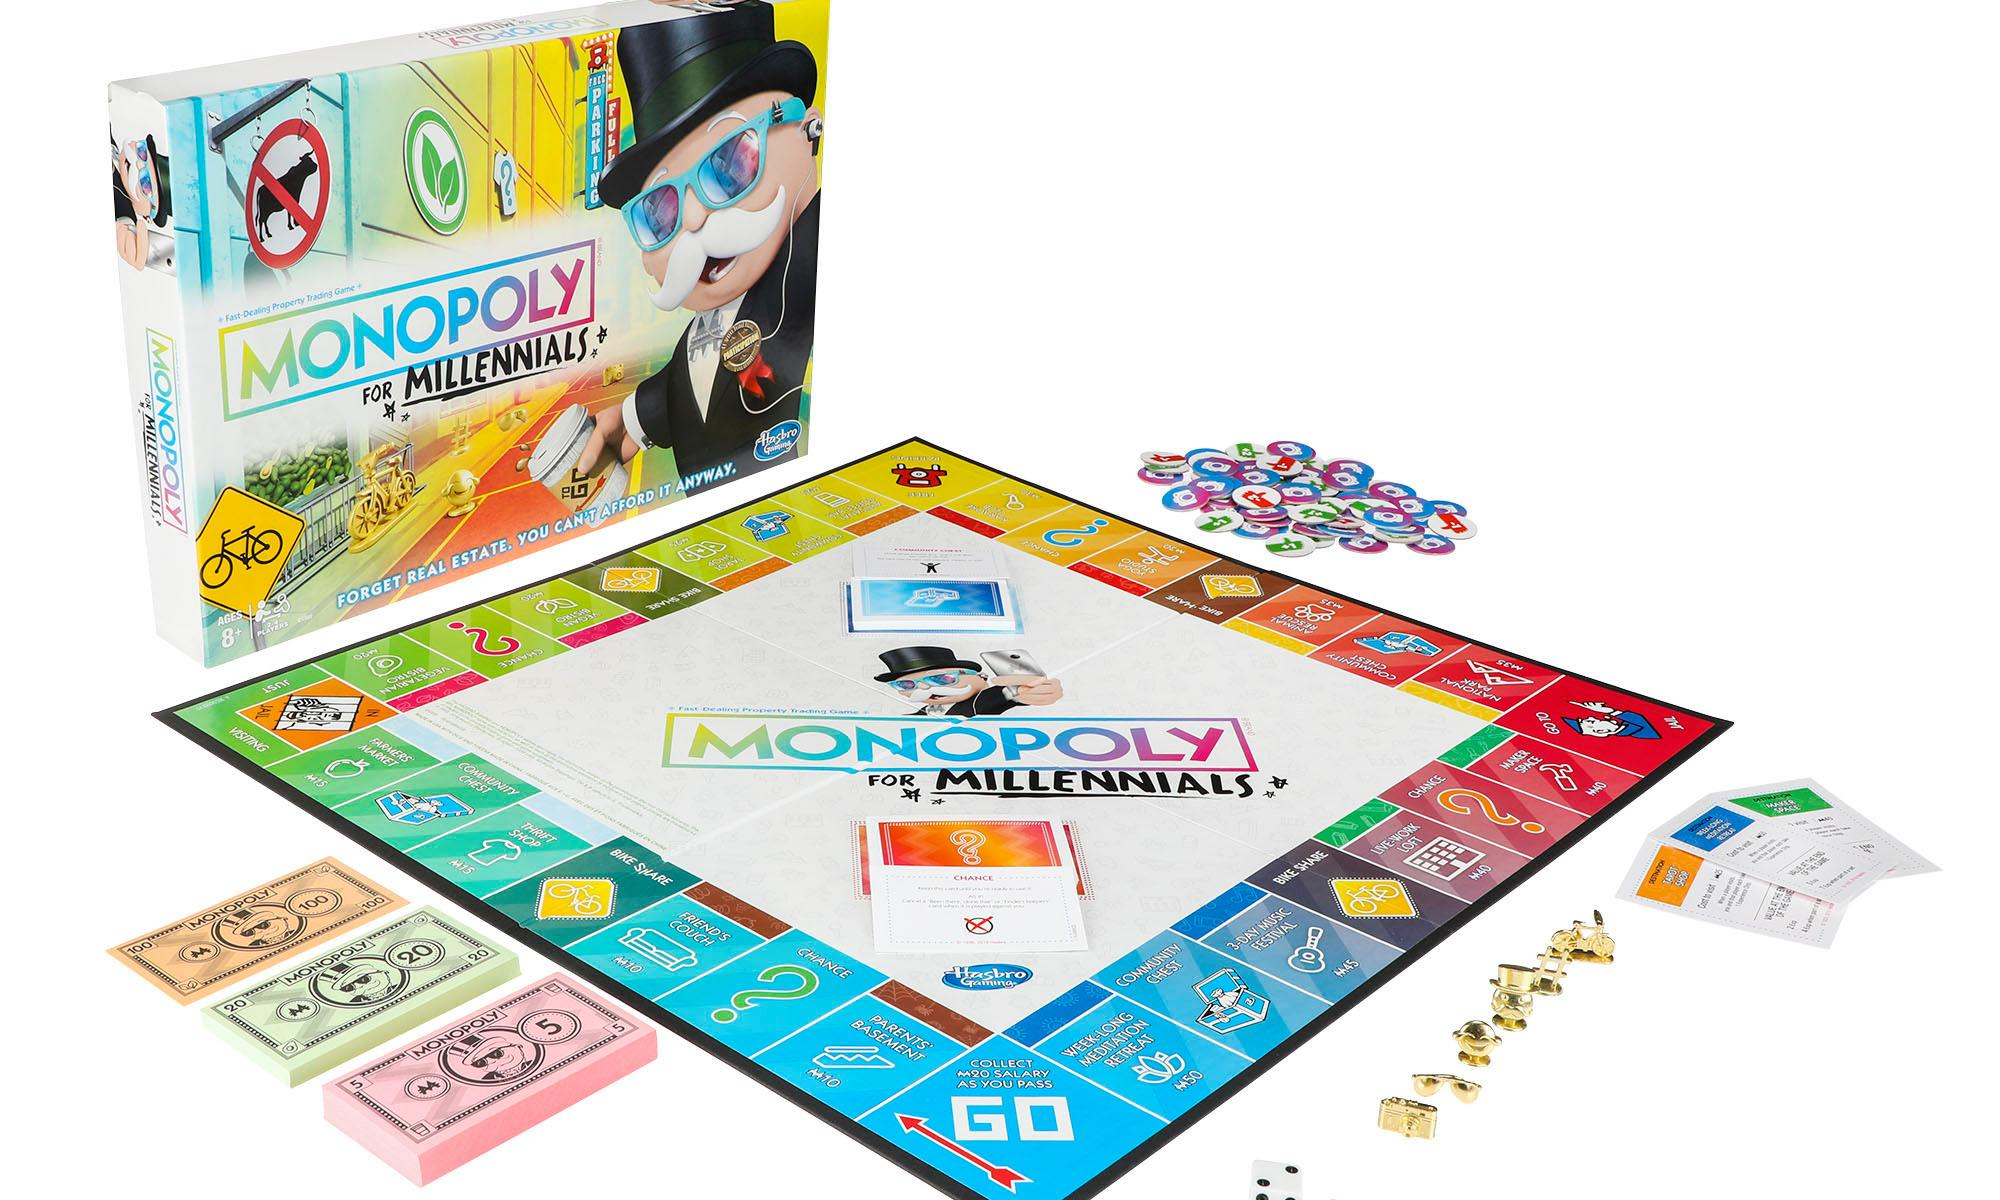 Monopoly for Millennials: trolling about my generation